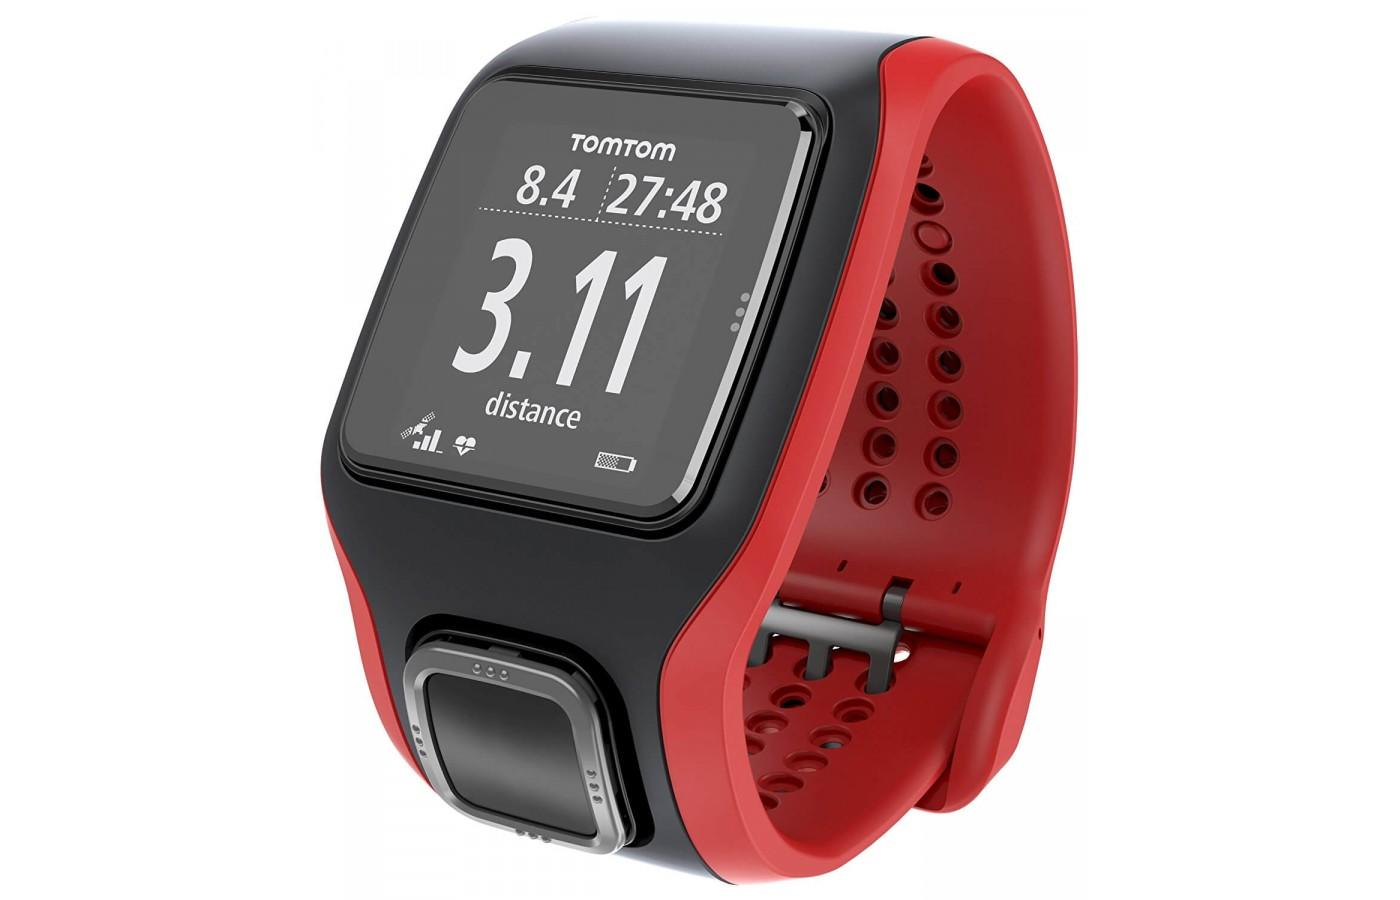 A review of the TomTom Runner Cardio GPS running watch